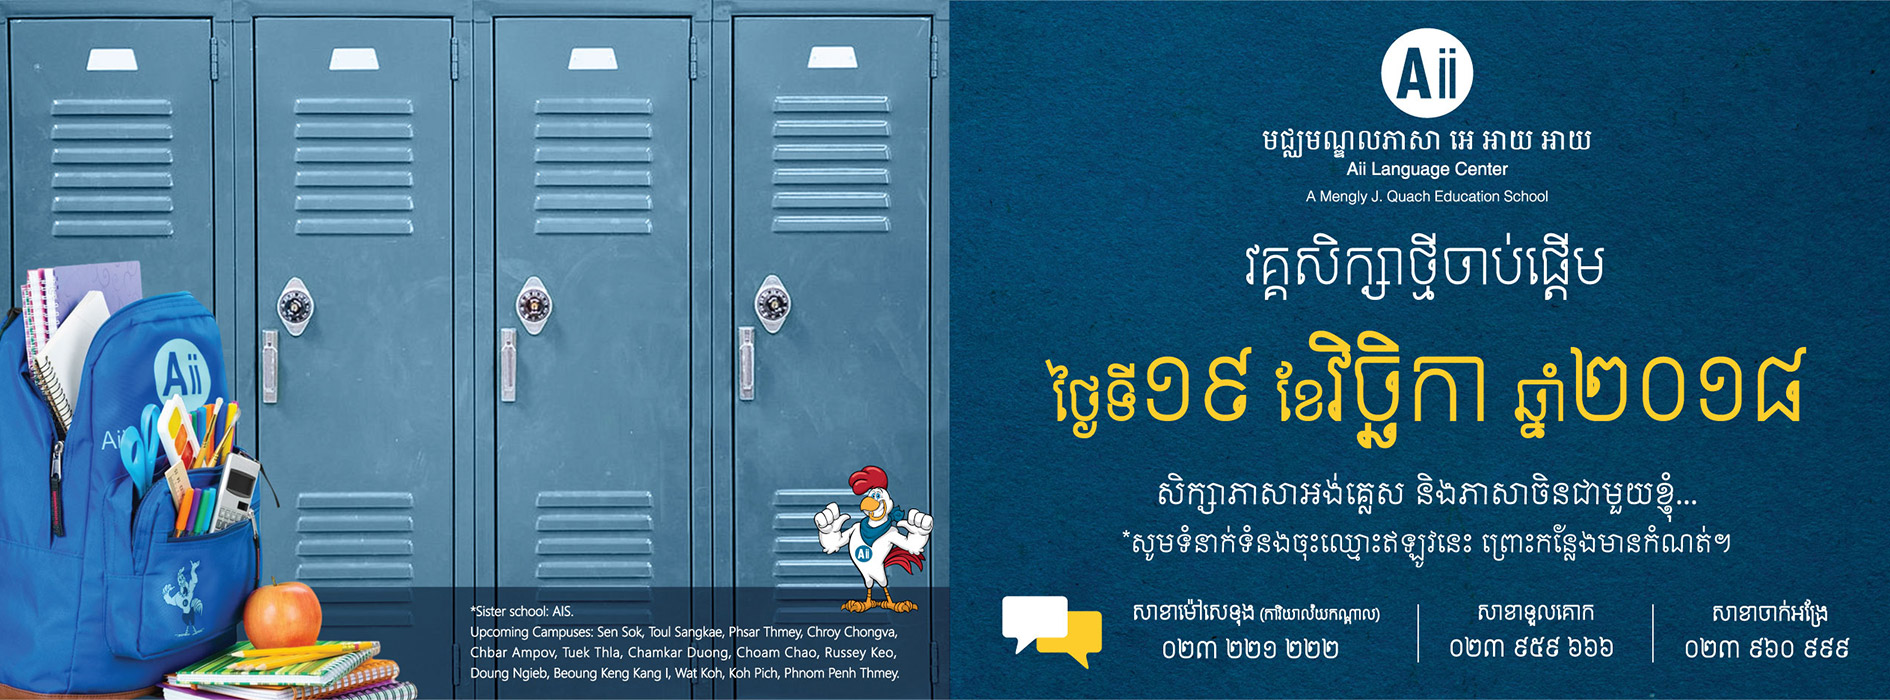 AiiLC-New-Term-59-Website-Slide-Show_Khmer-Version-2